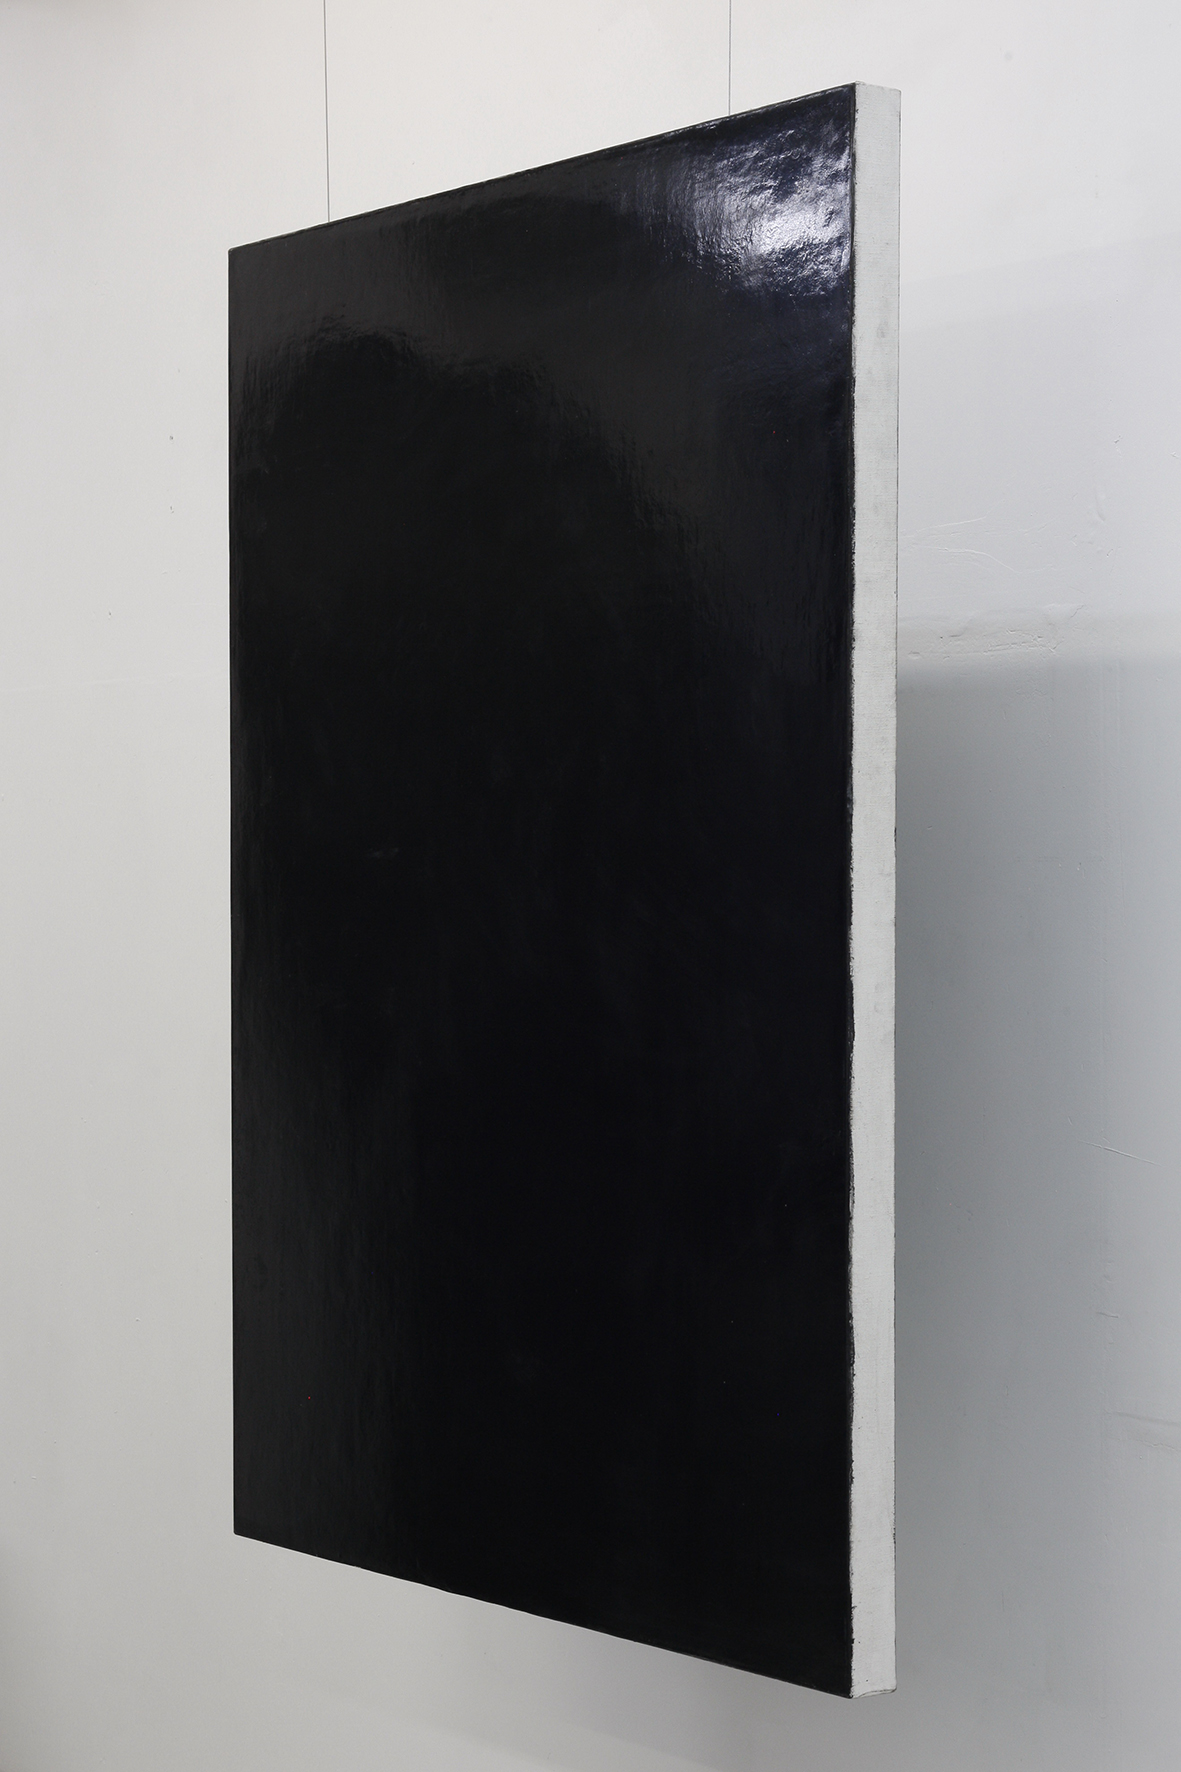 Canvas 02, black painting hanging on two steel rop with distance to the wall l Artwork by Erik Andersen